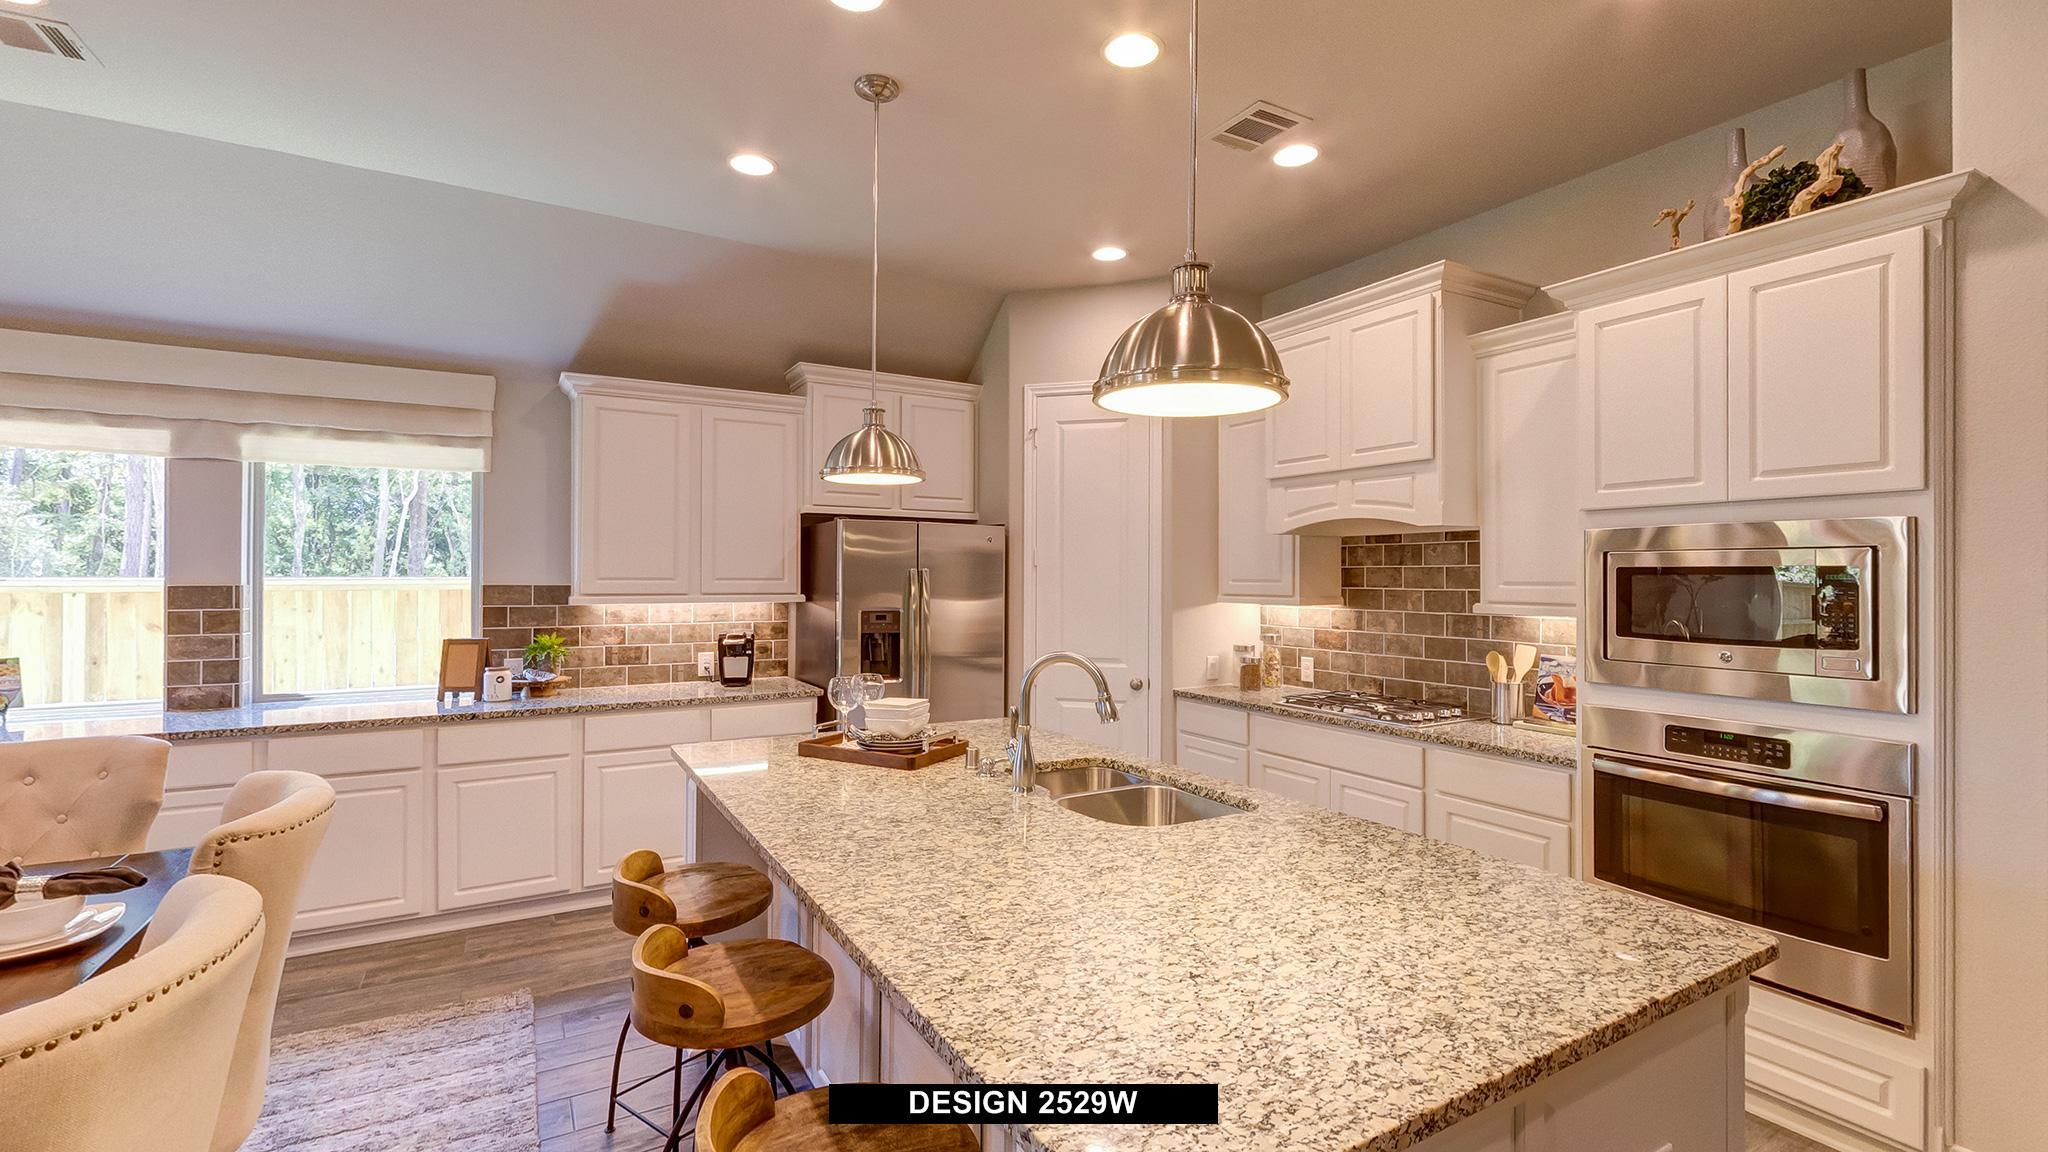 Kitchen-in-2529W-at-Wasser Ranch 50'-in-New Braunfels